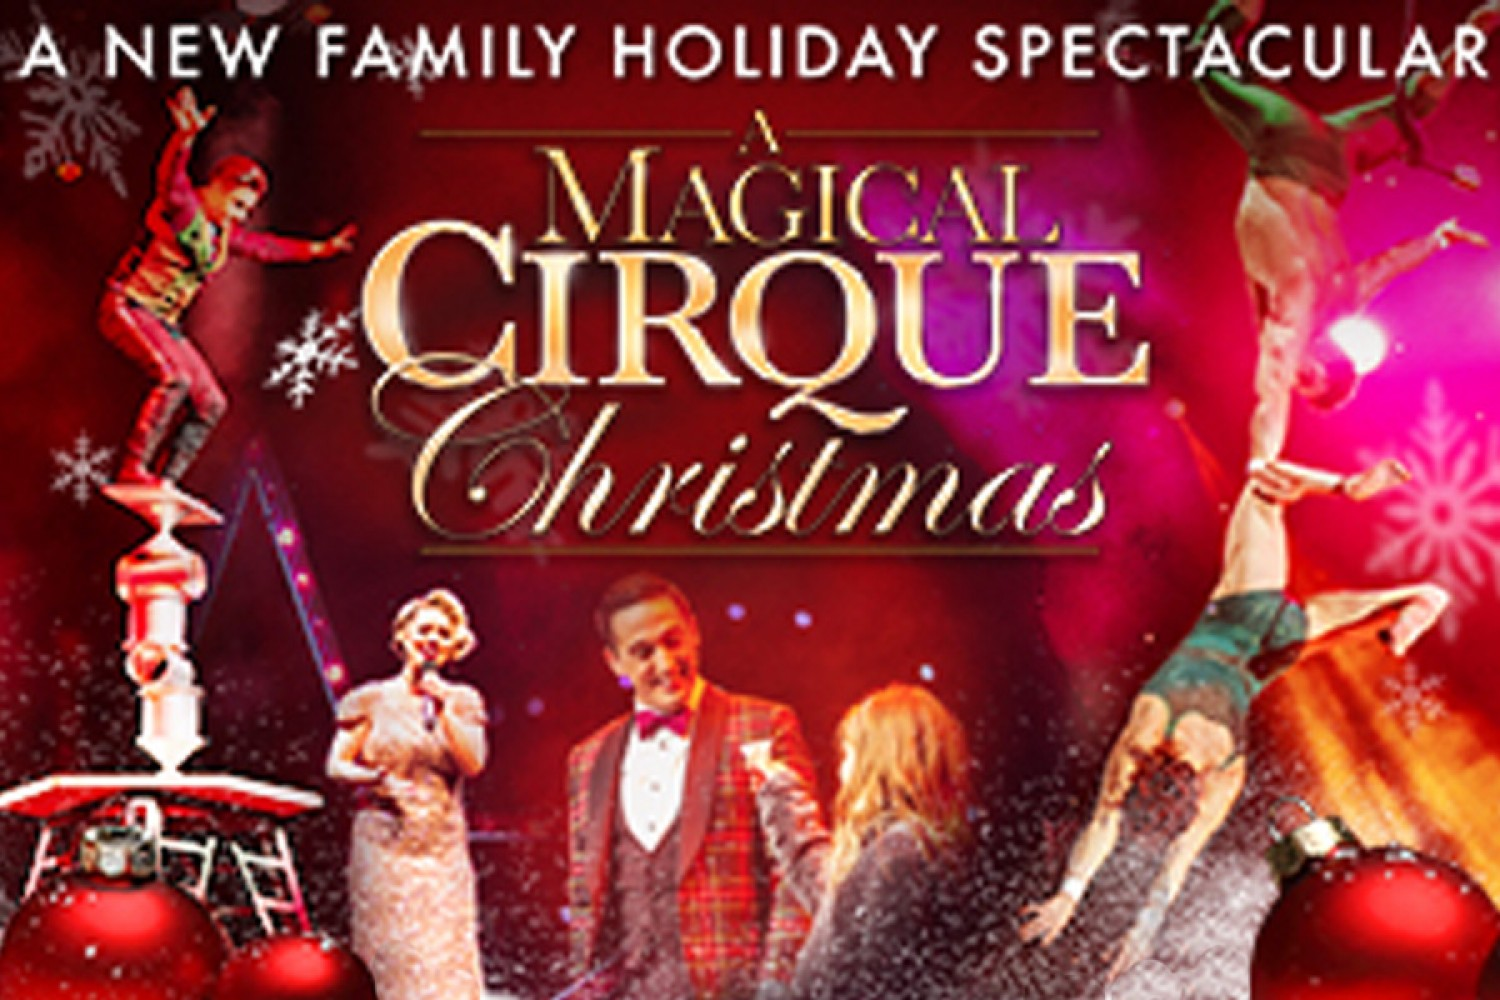 Cirque Christmas.A Magical Cirque Christmas Event Item Maxwell C King